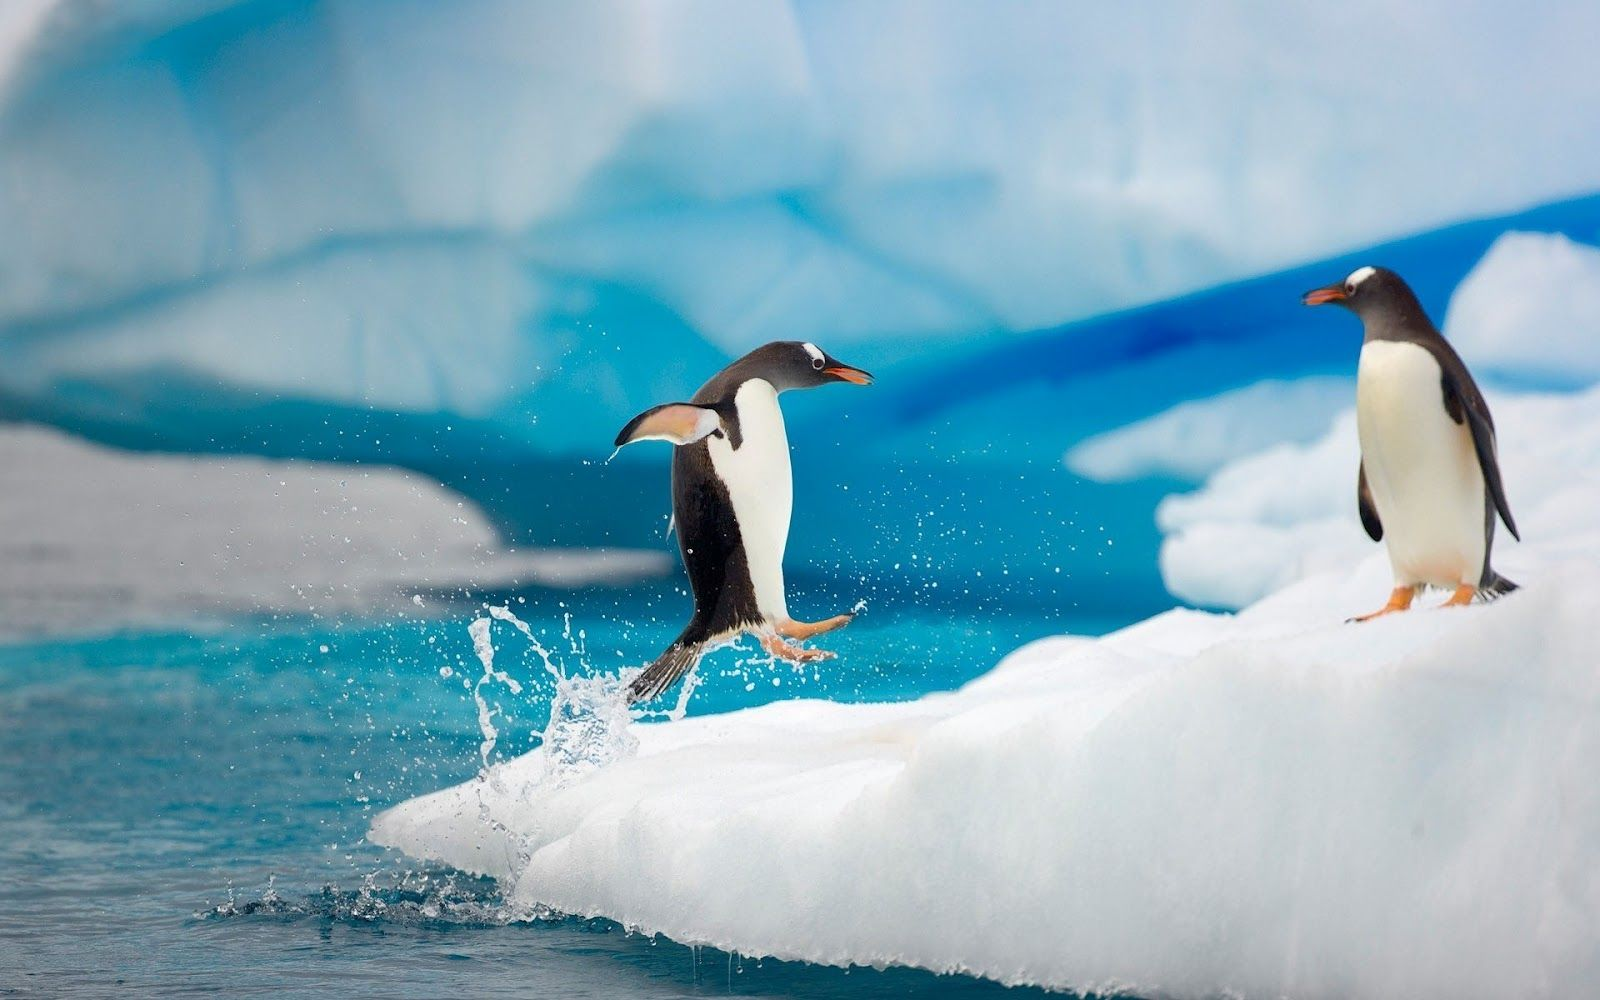 Cute penguins cute mighty pictures - Penguin Wallpaper Fantastic Penguin Images K Ultra Hd